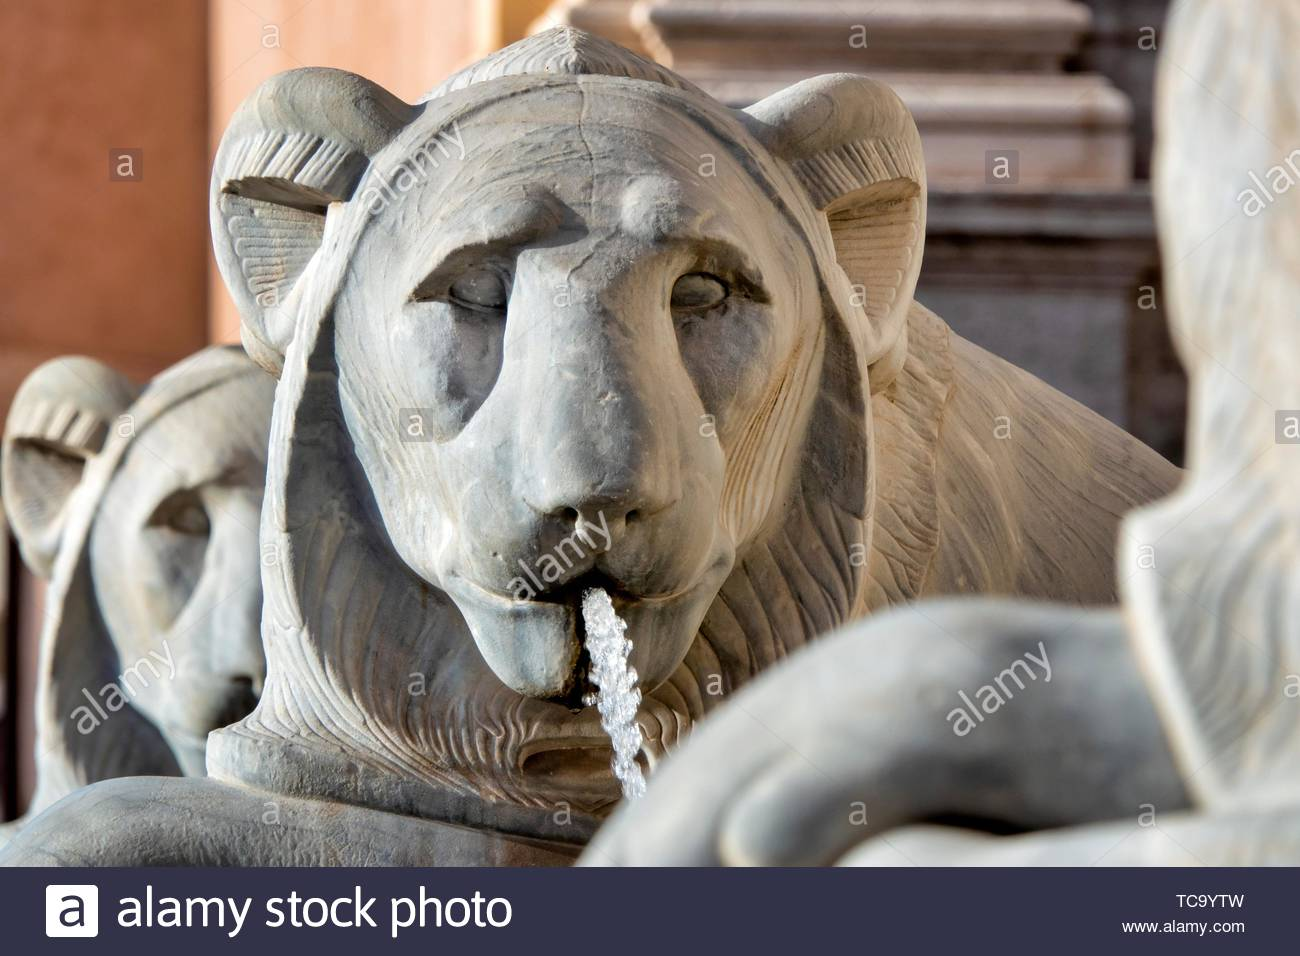 Close up shot of a statue of an egyptian lion in the Fontana dellâ.Acqua Felice , Rome Italy. - Stock Image